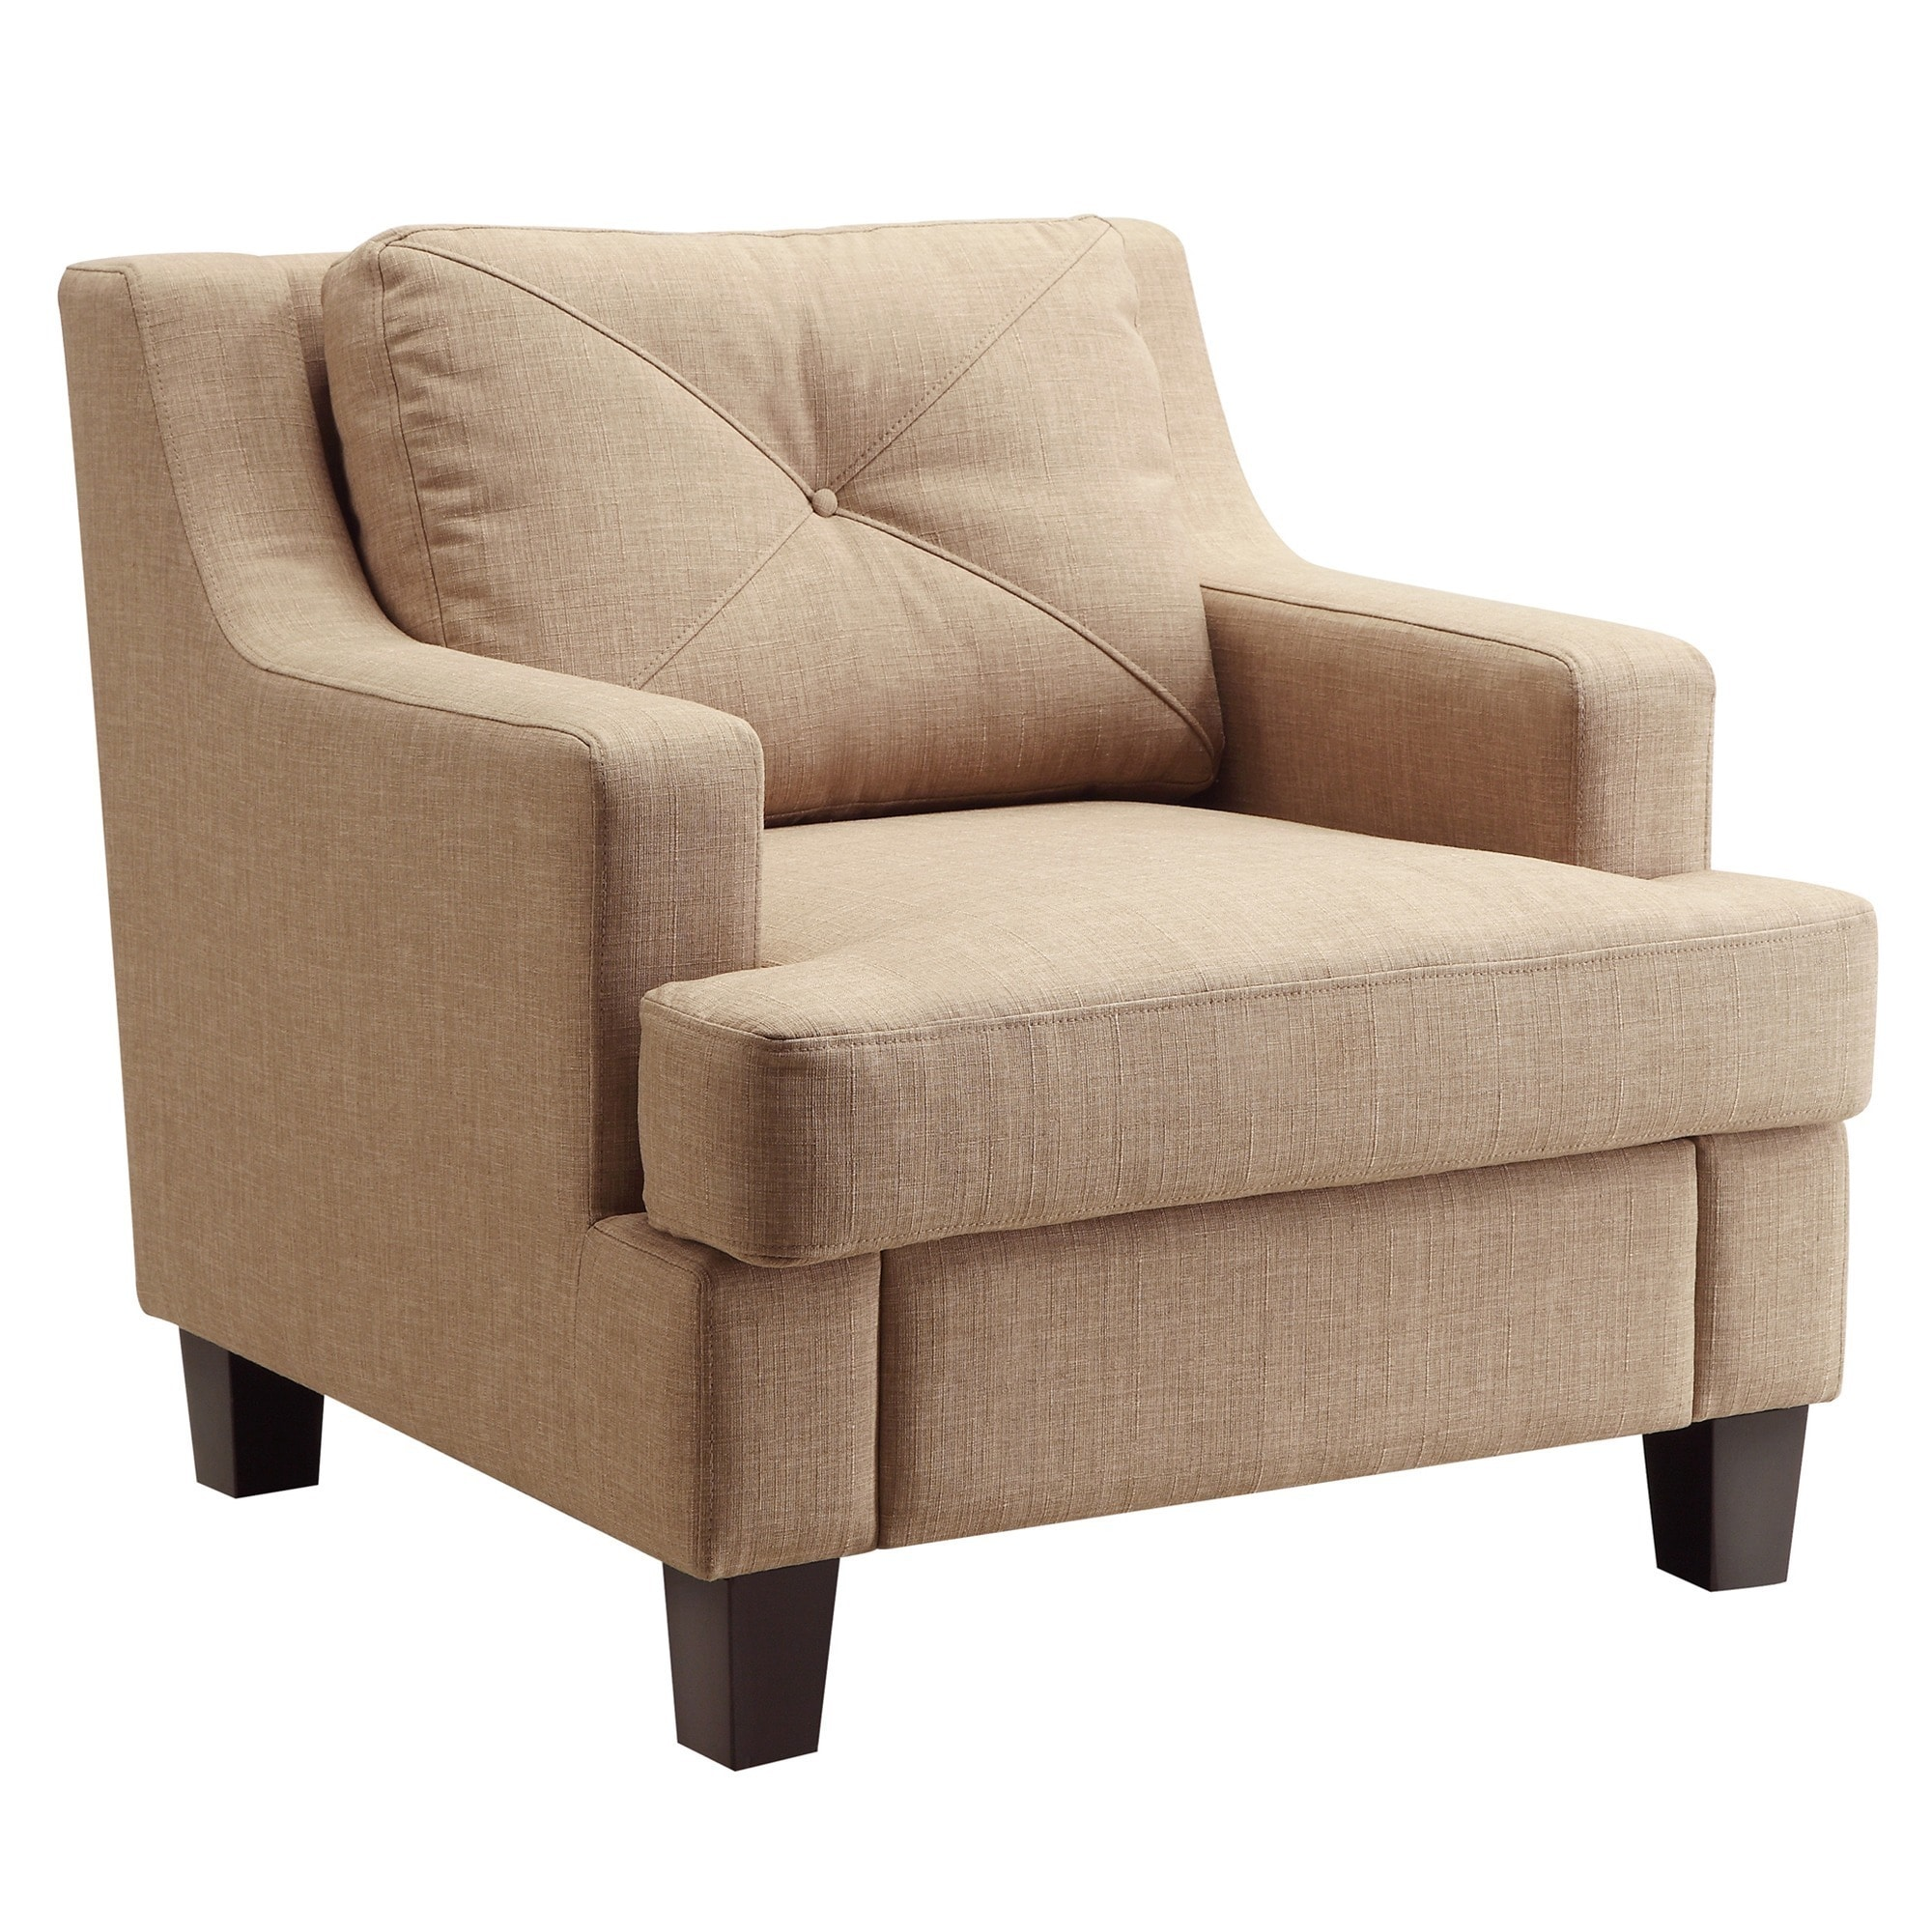 Elston Linen Sloped Track Arm Chair iNSPIRE Q Modern - Free Shipping Today  - Overstock.com - 16076379